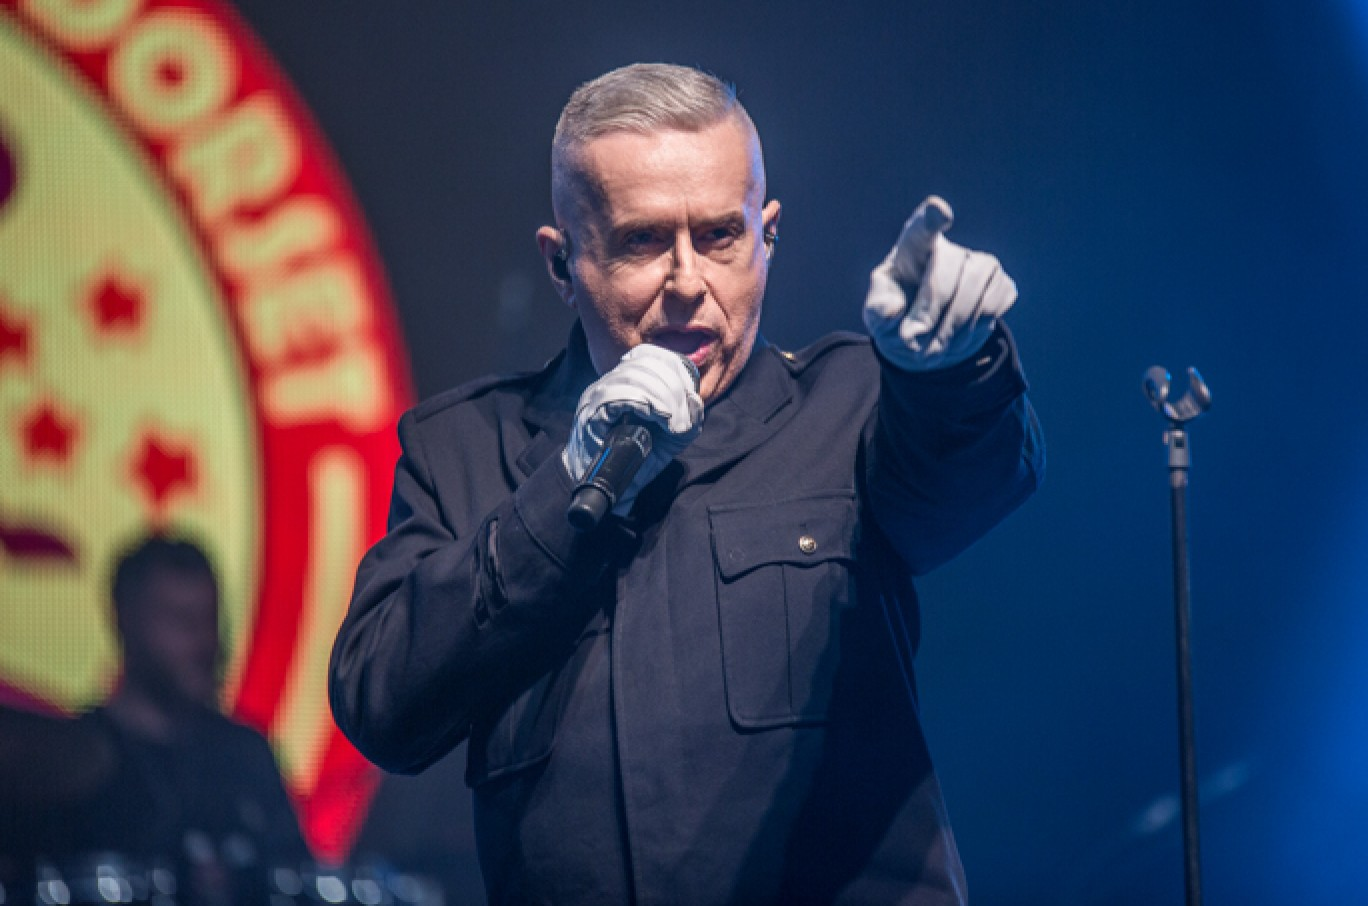 6_139-camp-bestival-2017-holly-johnson-aw-adam12131501585115